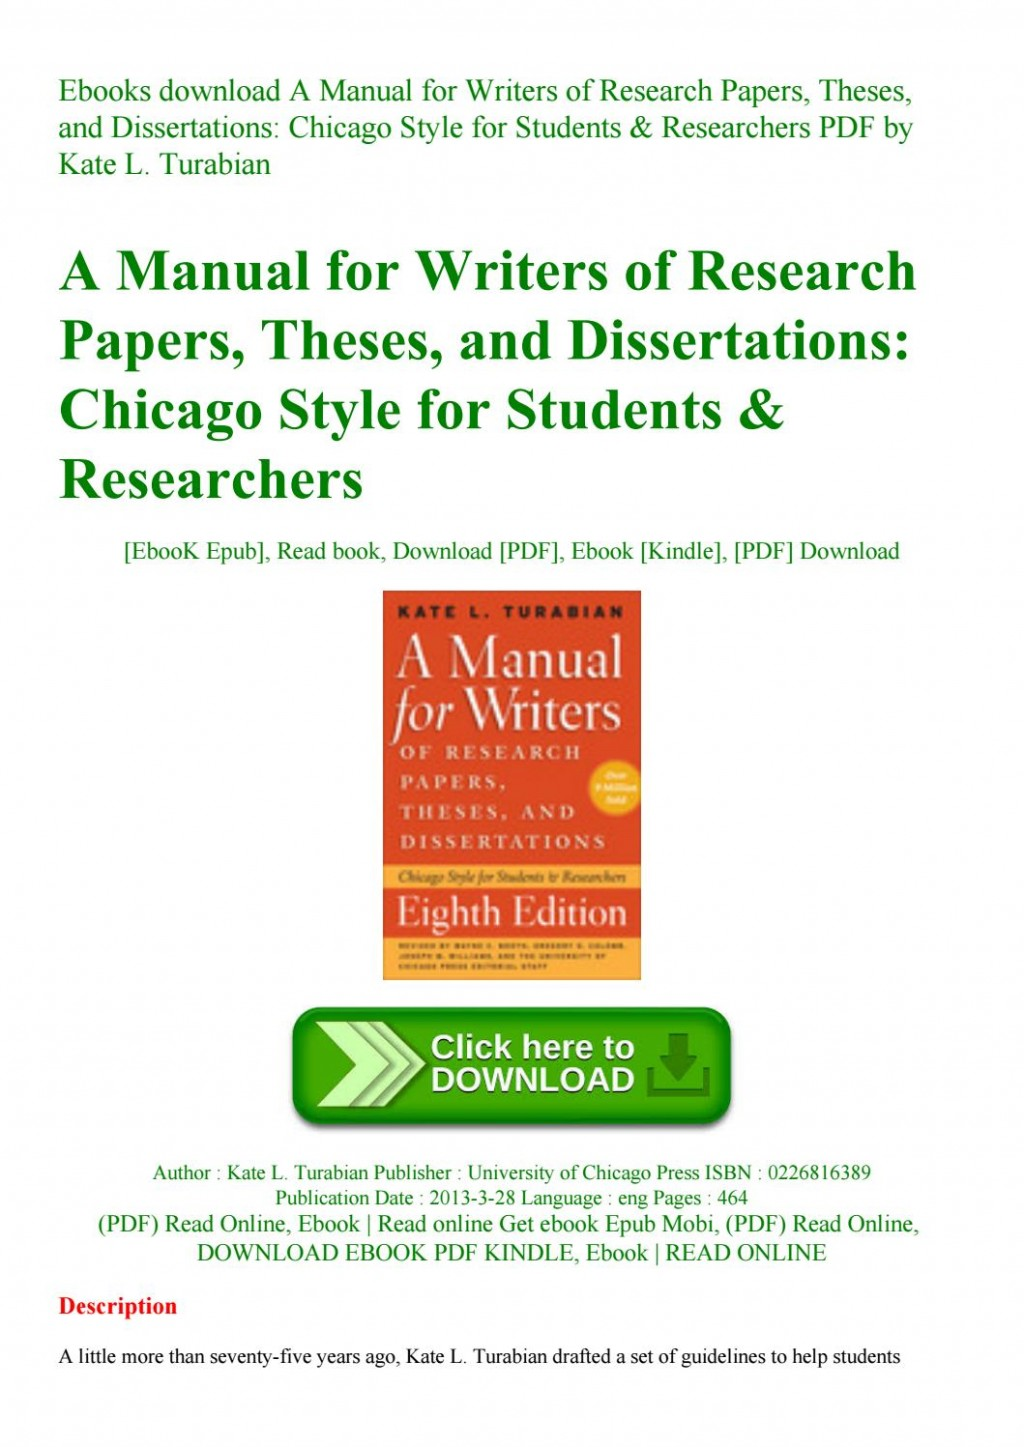 006 Manual For Writers Of Researchs Theses And Dissertations Turabian Page 1 Amazing A Research Papers Pdf Large